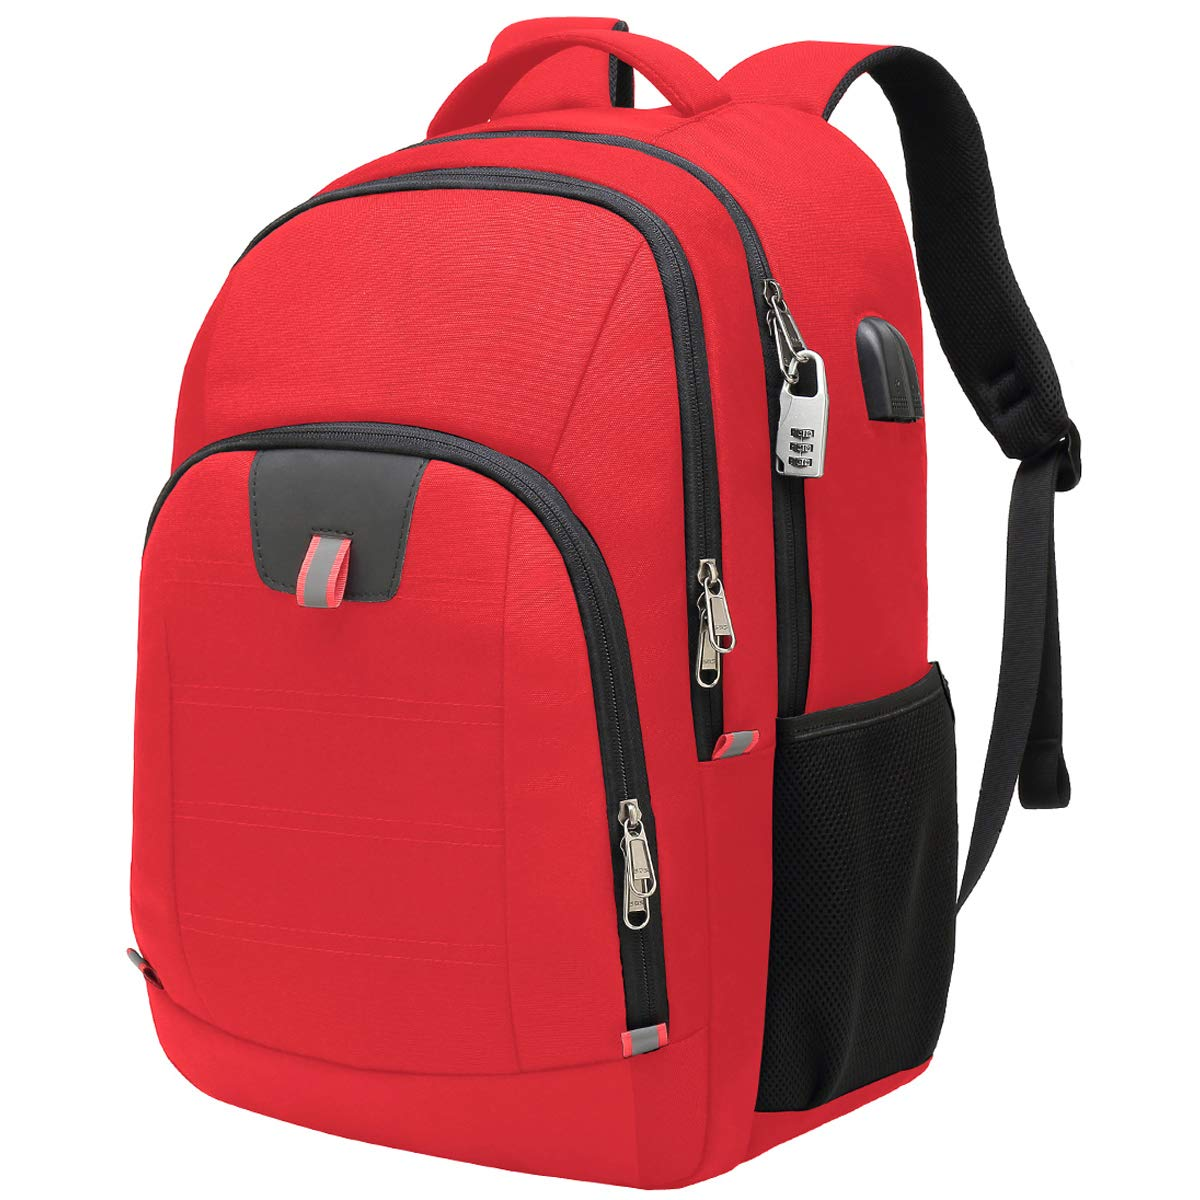 Travel Laptop Backpack,Extra Large Anti Theft College School Backpack for Men and Women with USB Charging Port,Water Resistant Big Business Computer Backpack Bag Fit 17 Inch Laptop and Notebook,Red